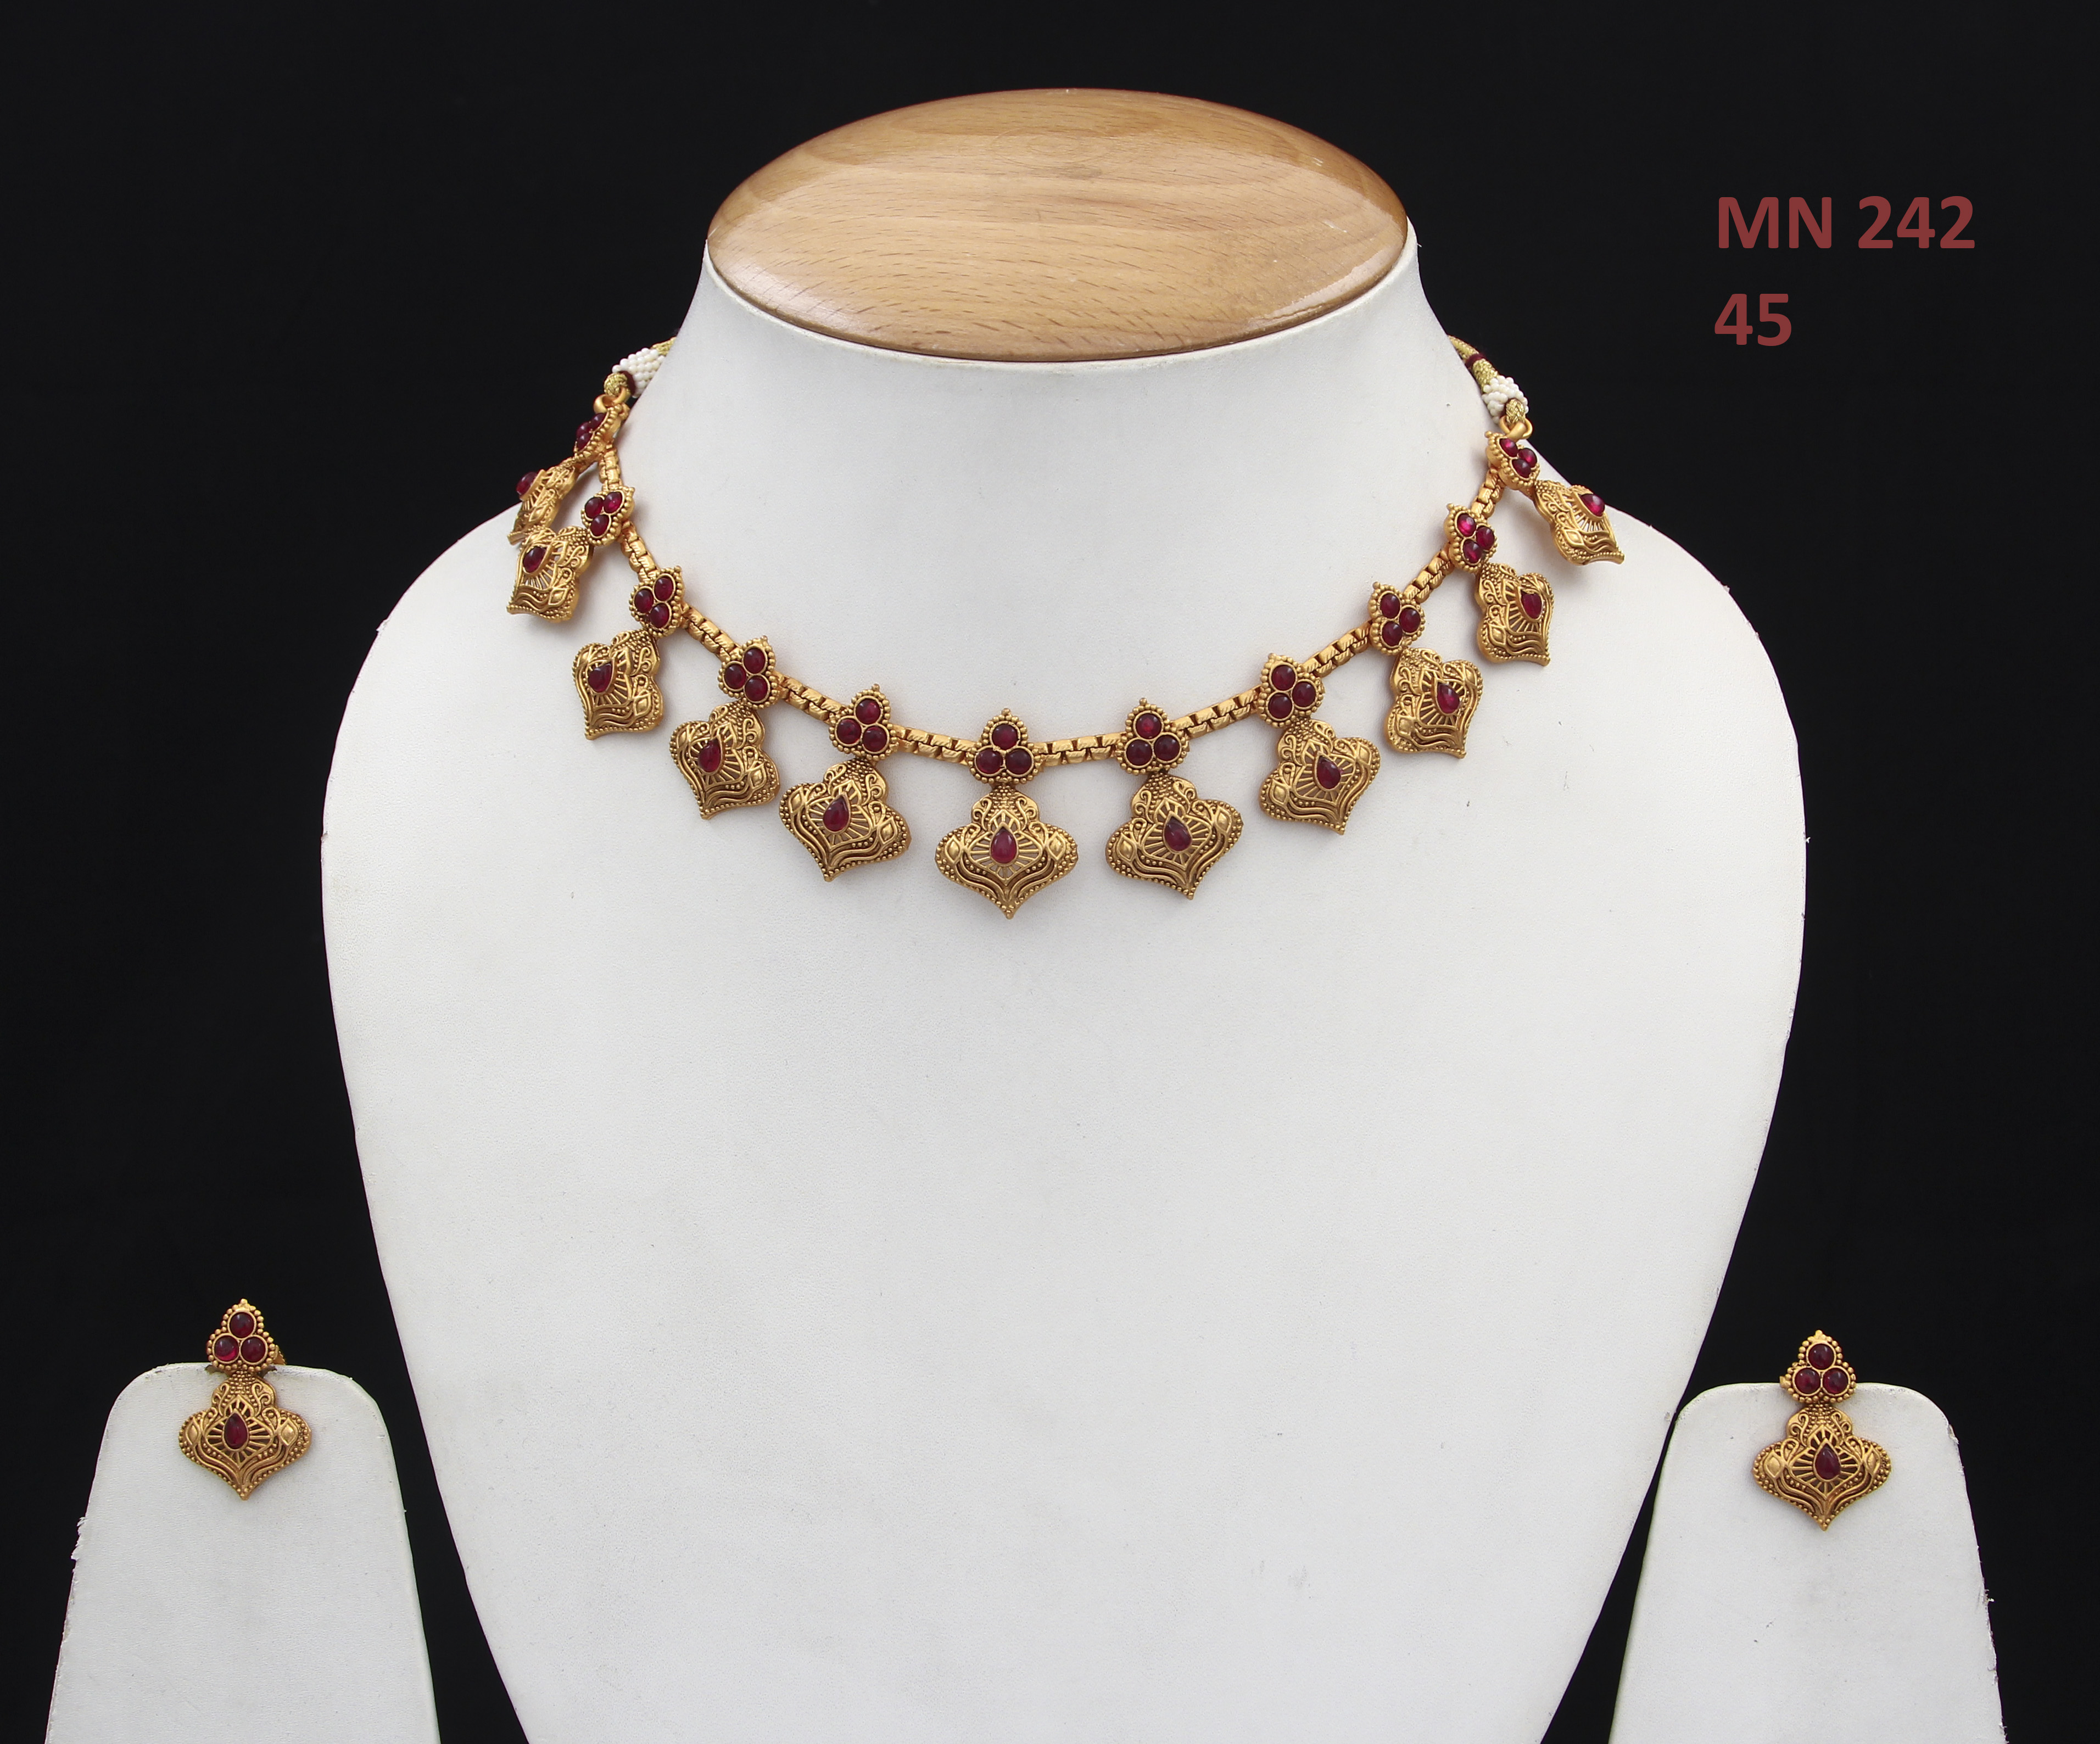 55Carat   55Carat Beautiful Choker Necklace Set with Earrings Gold Plated Ruby Embellished Traditional Women Wedding Jewellery for Women and Girls